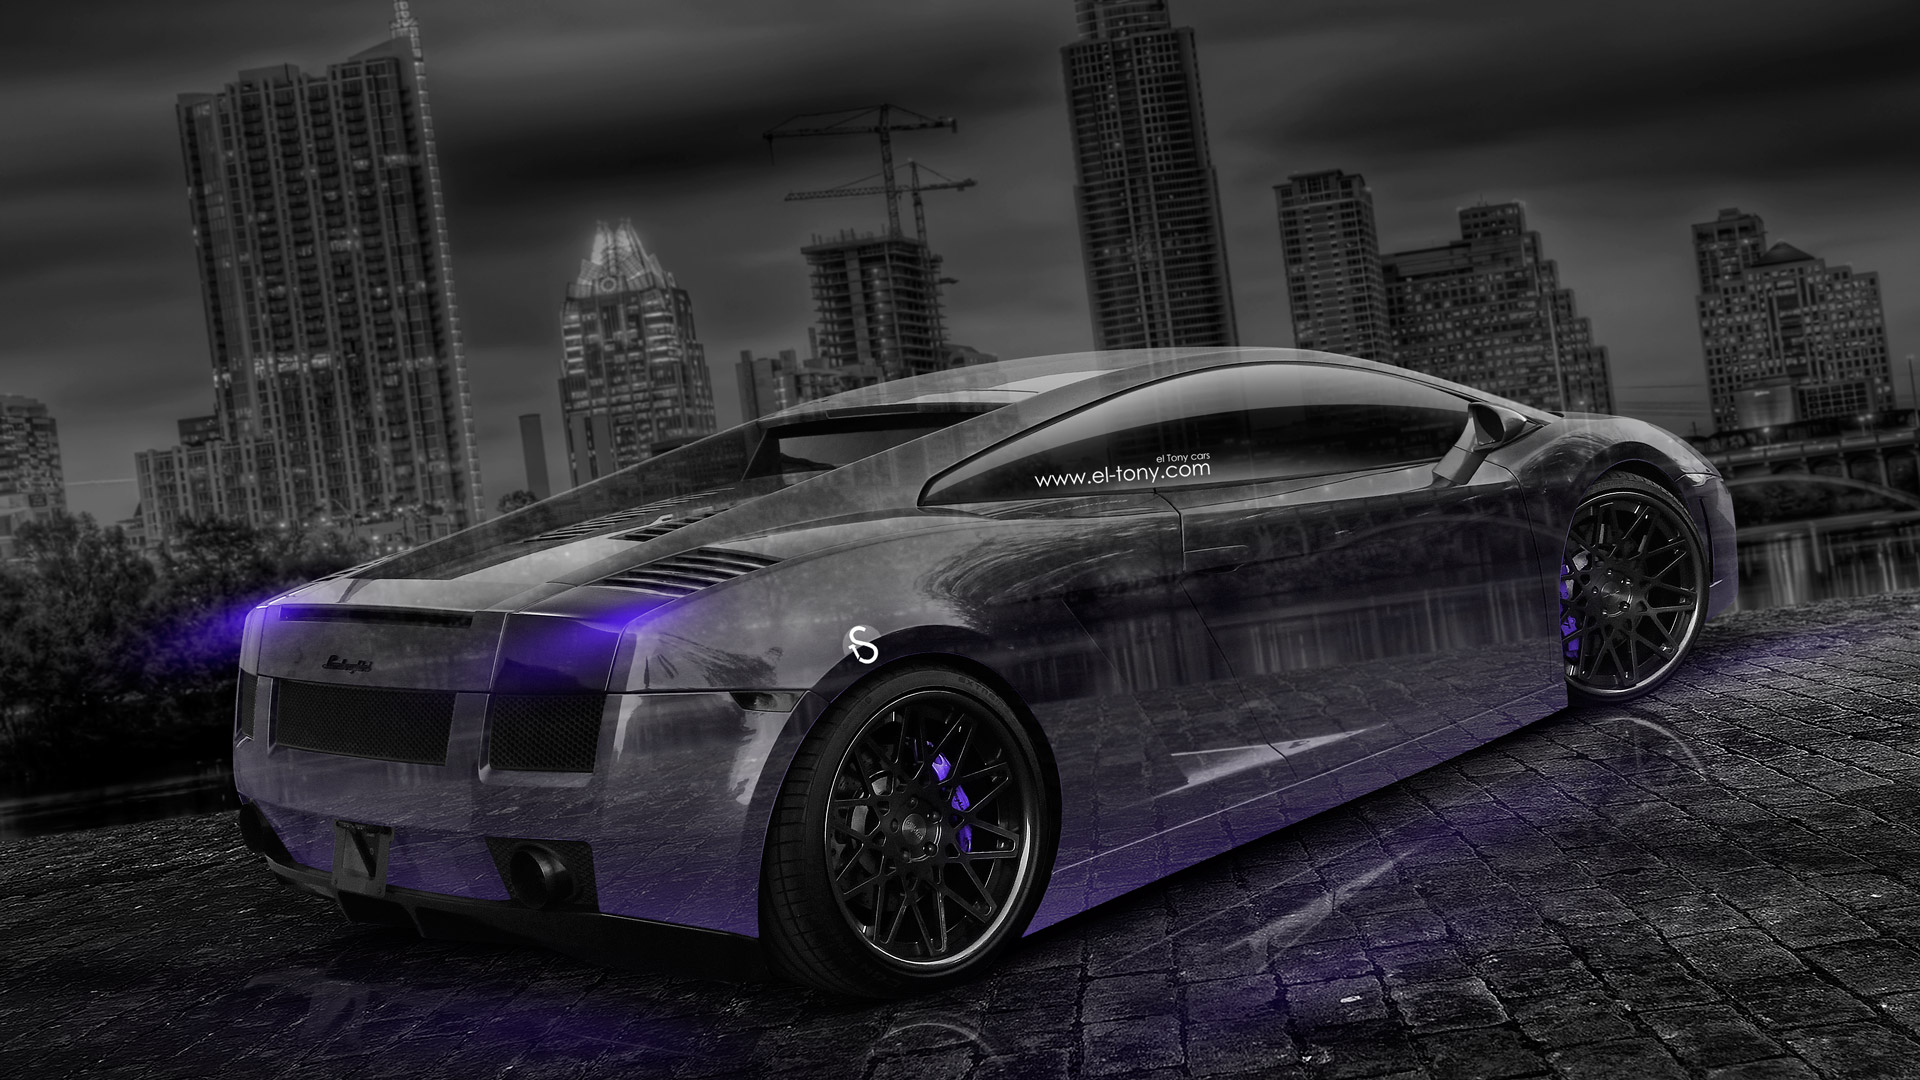 Lamborghini Gallardo Crystal City Car 2014 Art Violet